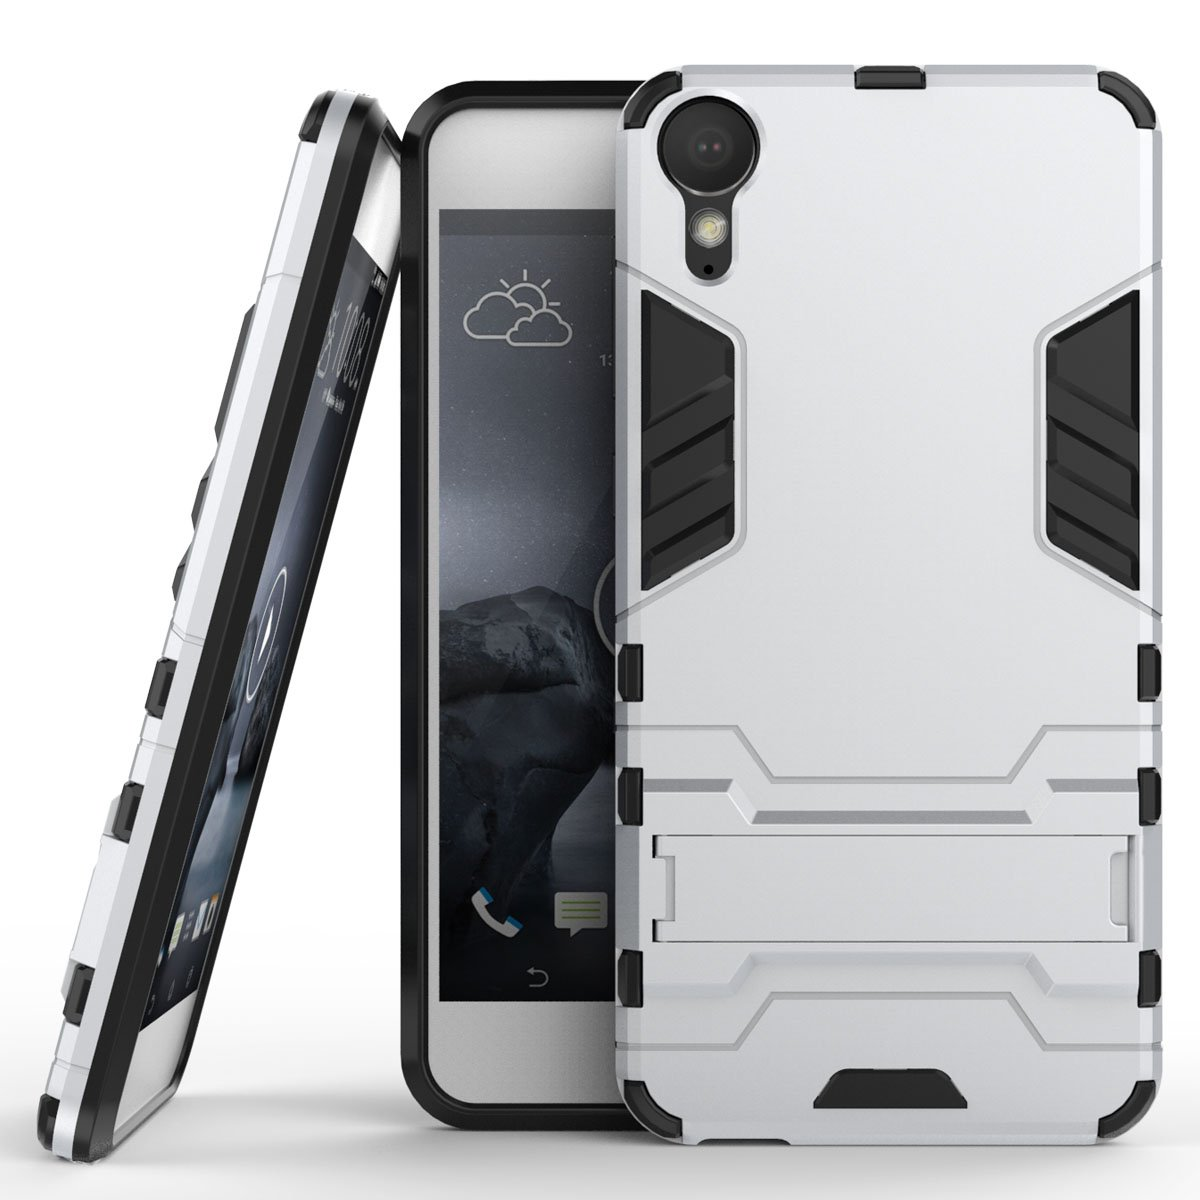 HTC Desire 10 Lifestyle Case, HTC Desire 10 Lifestyle Hybrid Case, Dual Layer Protection Shockproof Hybrid Rugged Case Hard Shell Cover with Kickstand for 5.5'' HTC Desire 10 Lifestyle